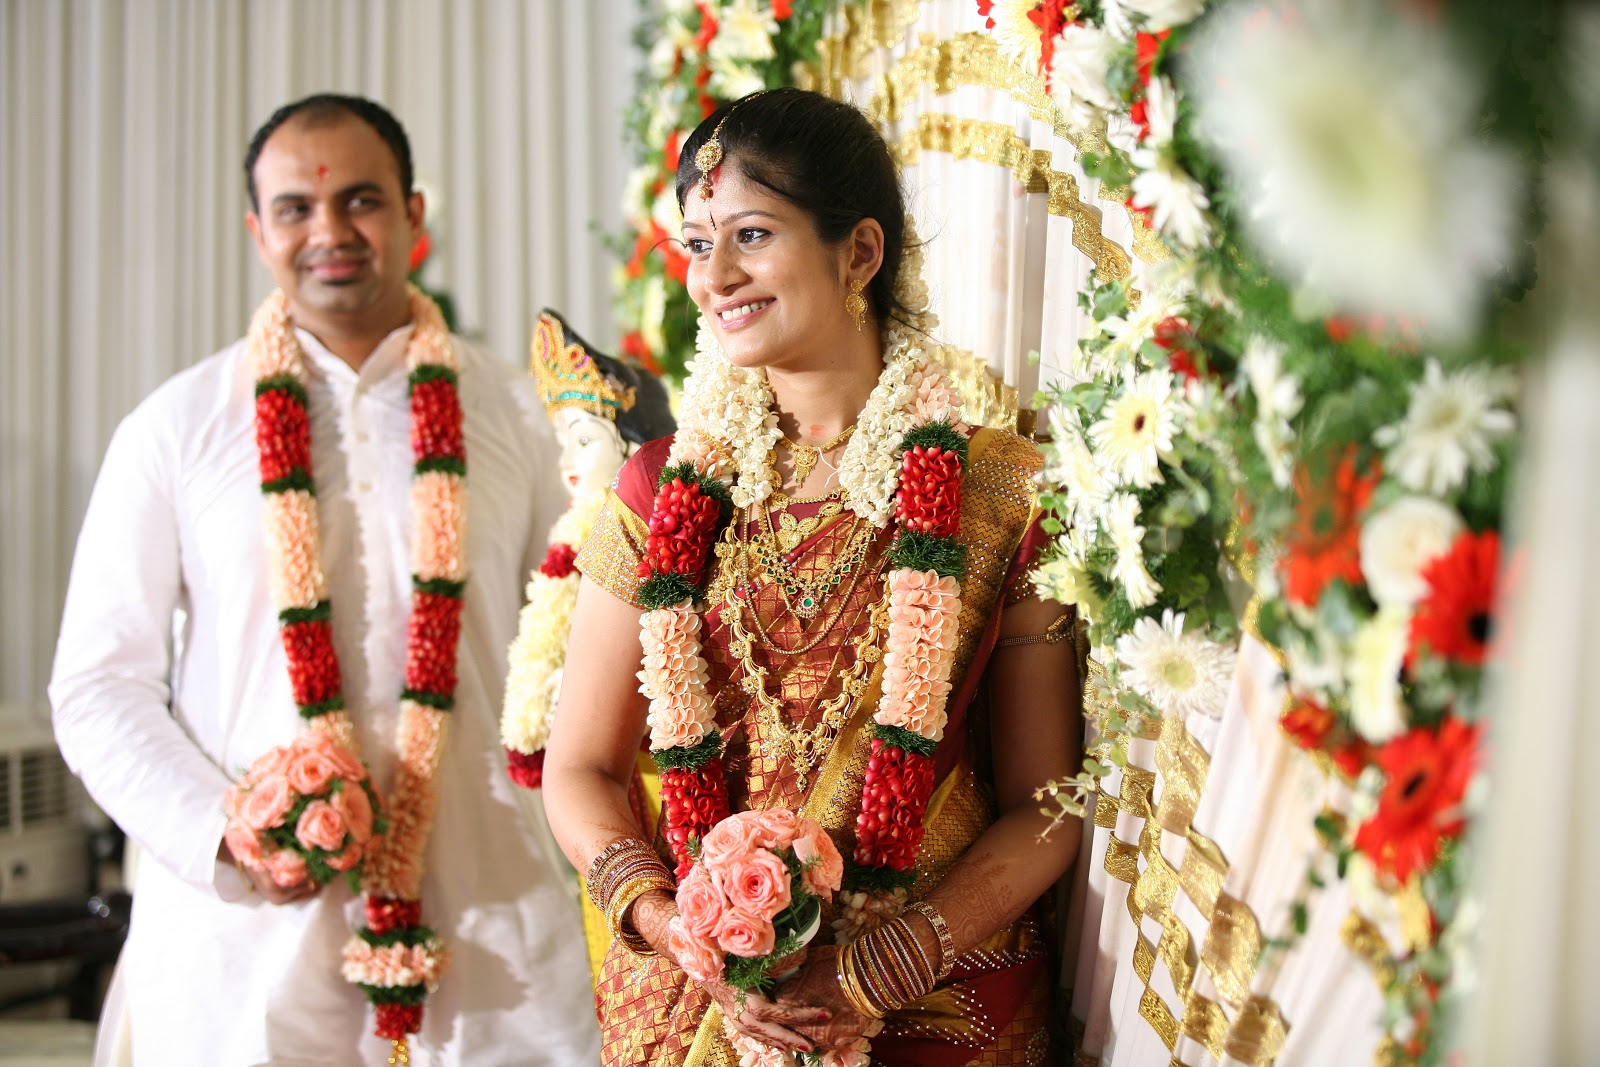 Kerala Wedding Photography Videos: Photography: Candid Wedding Photography At Palakkad Kerala